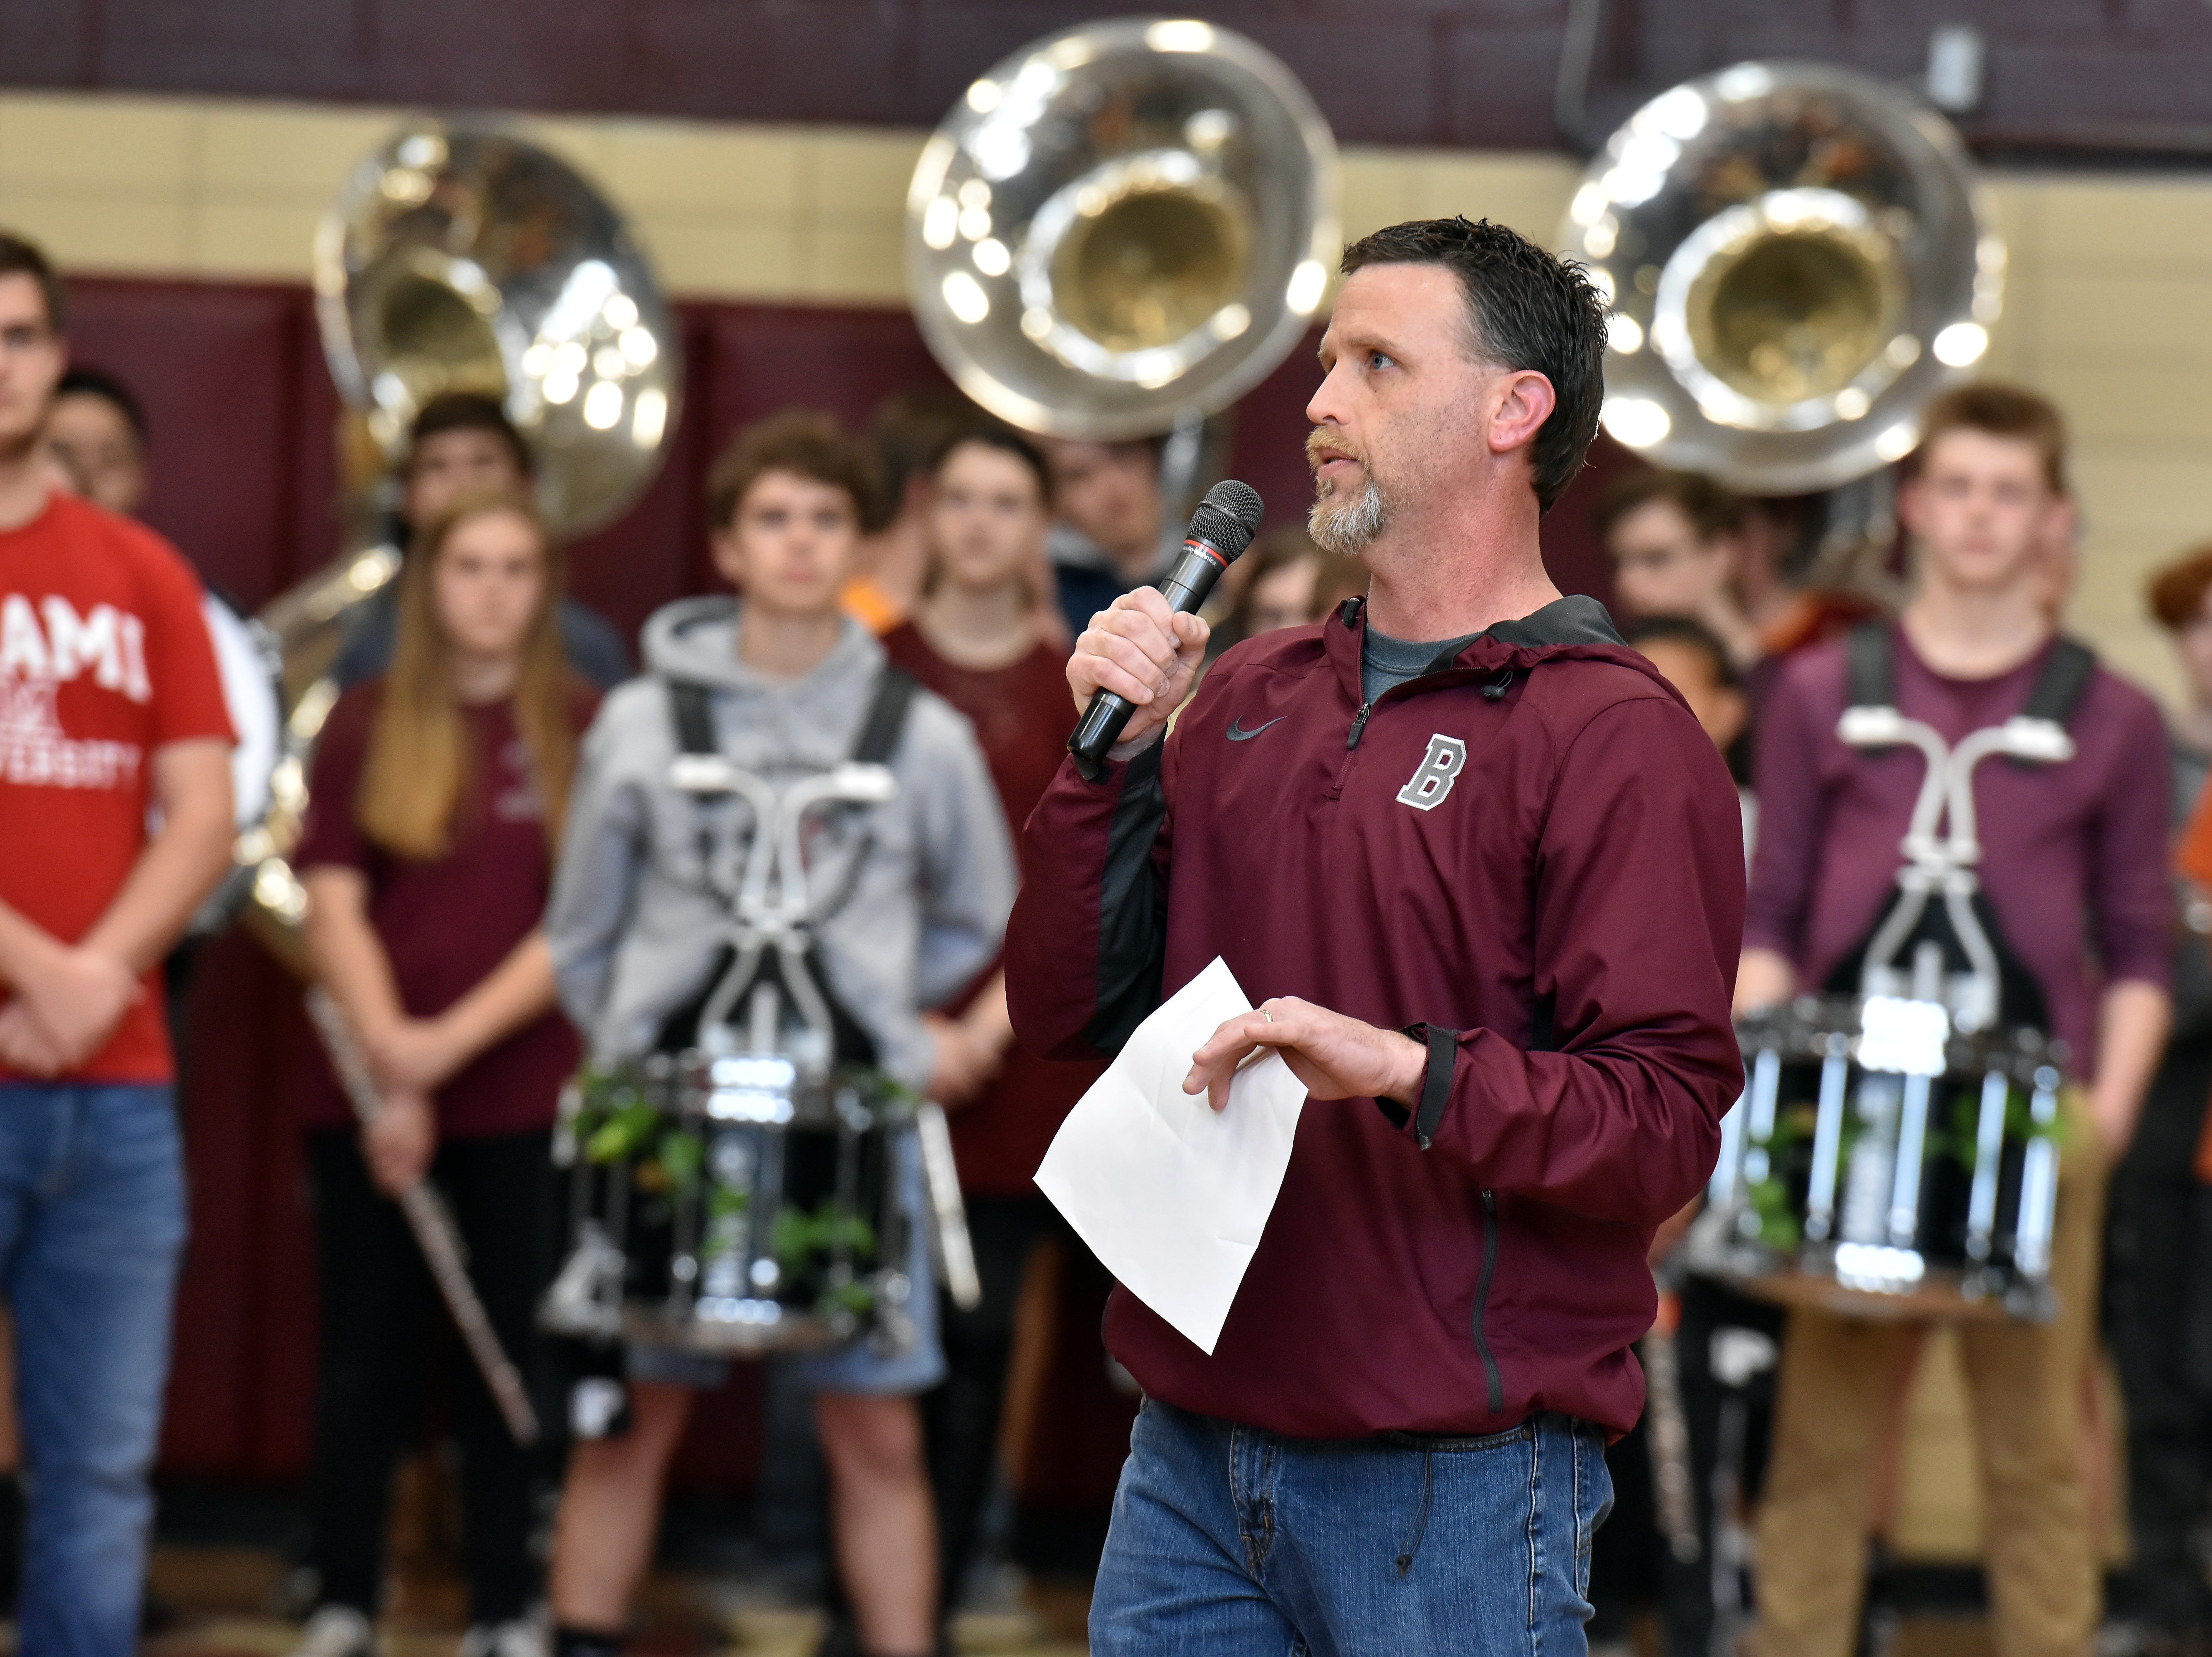 Bearden High athletic director Donald Balcom kicks off the state championship celebration for the basketball team on Friday, March 29.